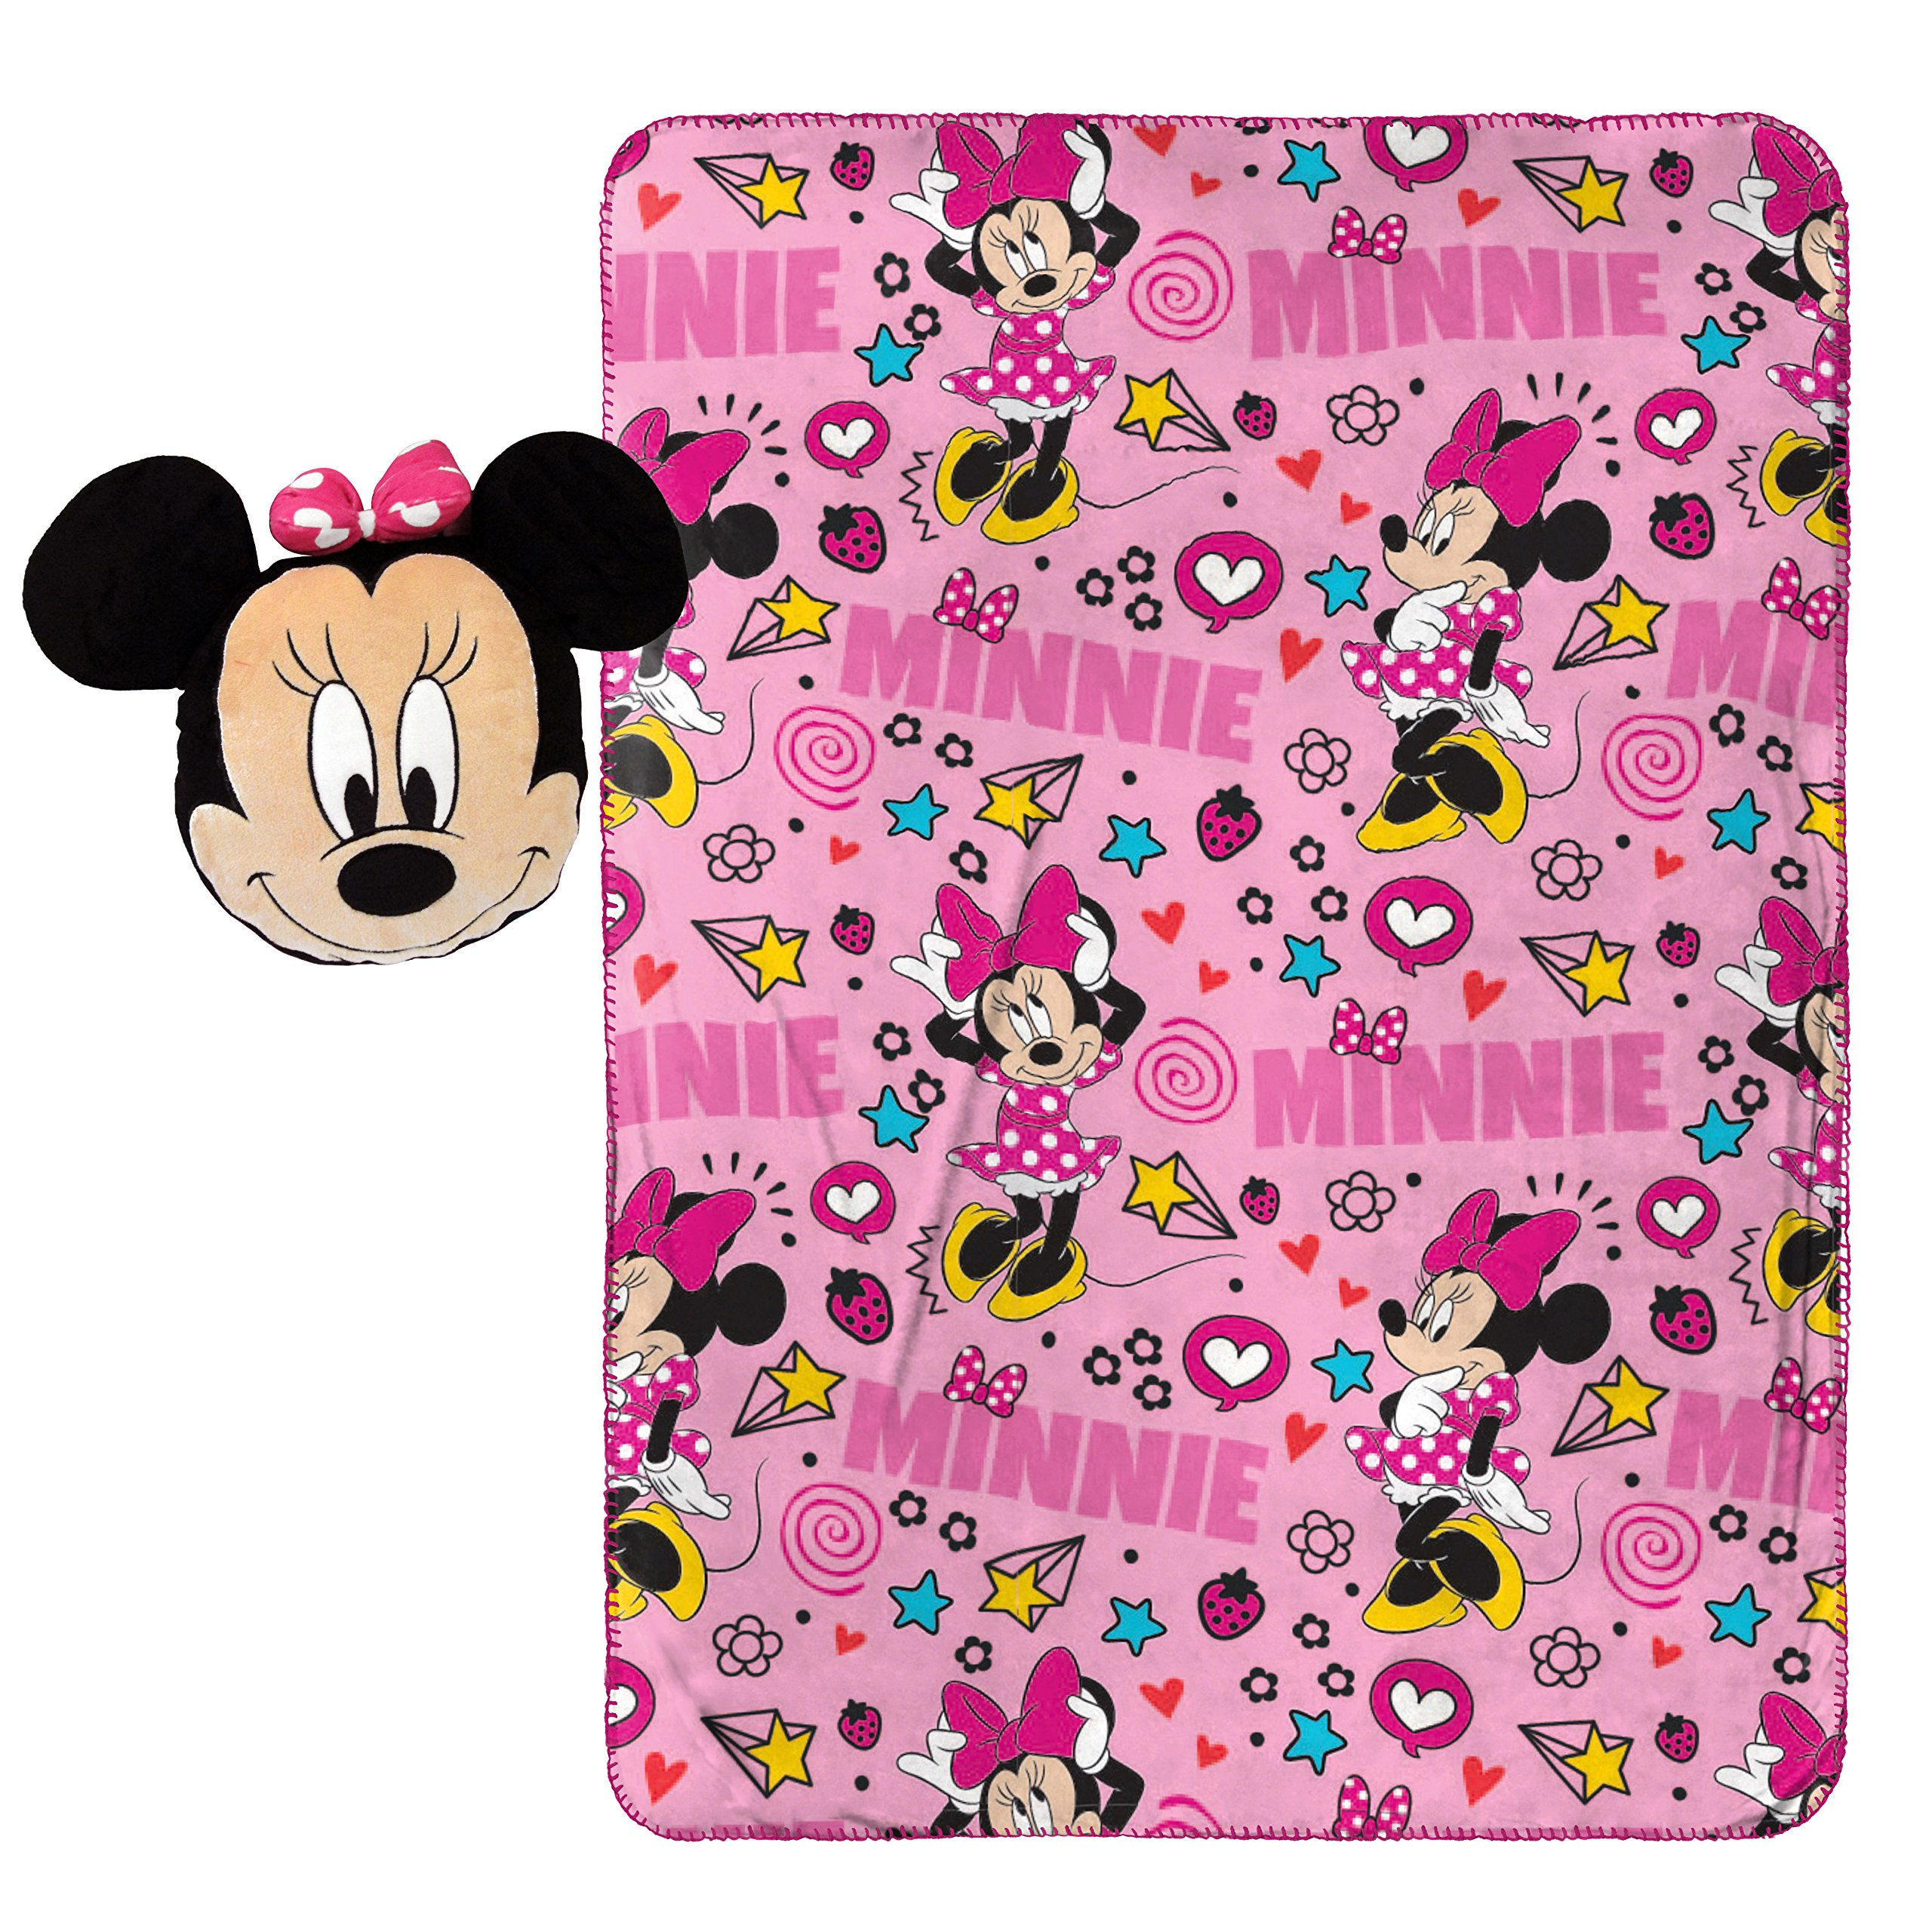 Disney Minnie Mouse Doodle Nogginz Pillow with 40'' x 50'' Travel Blanket Set by Disney (Image #1)